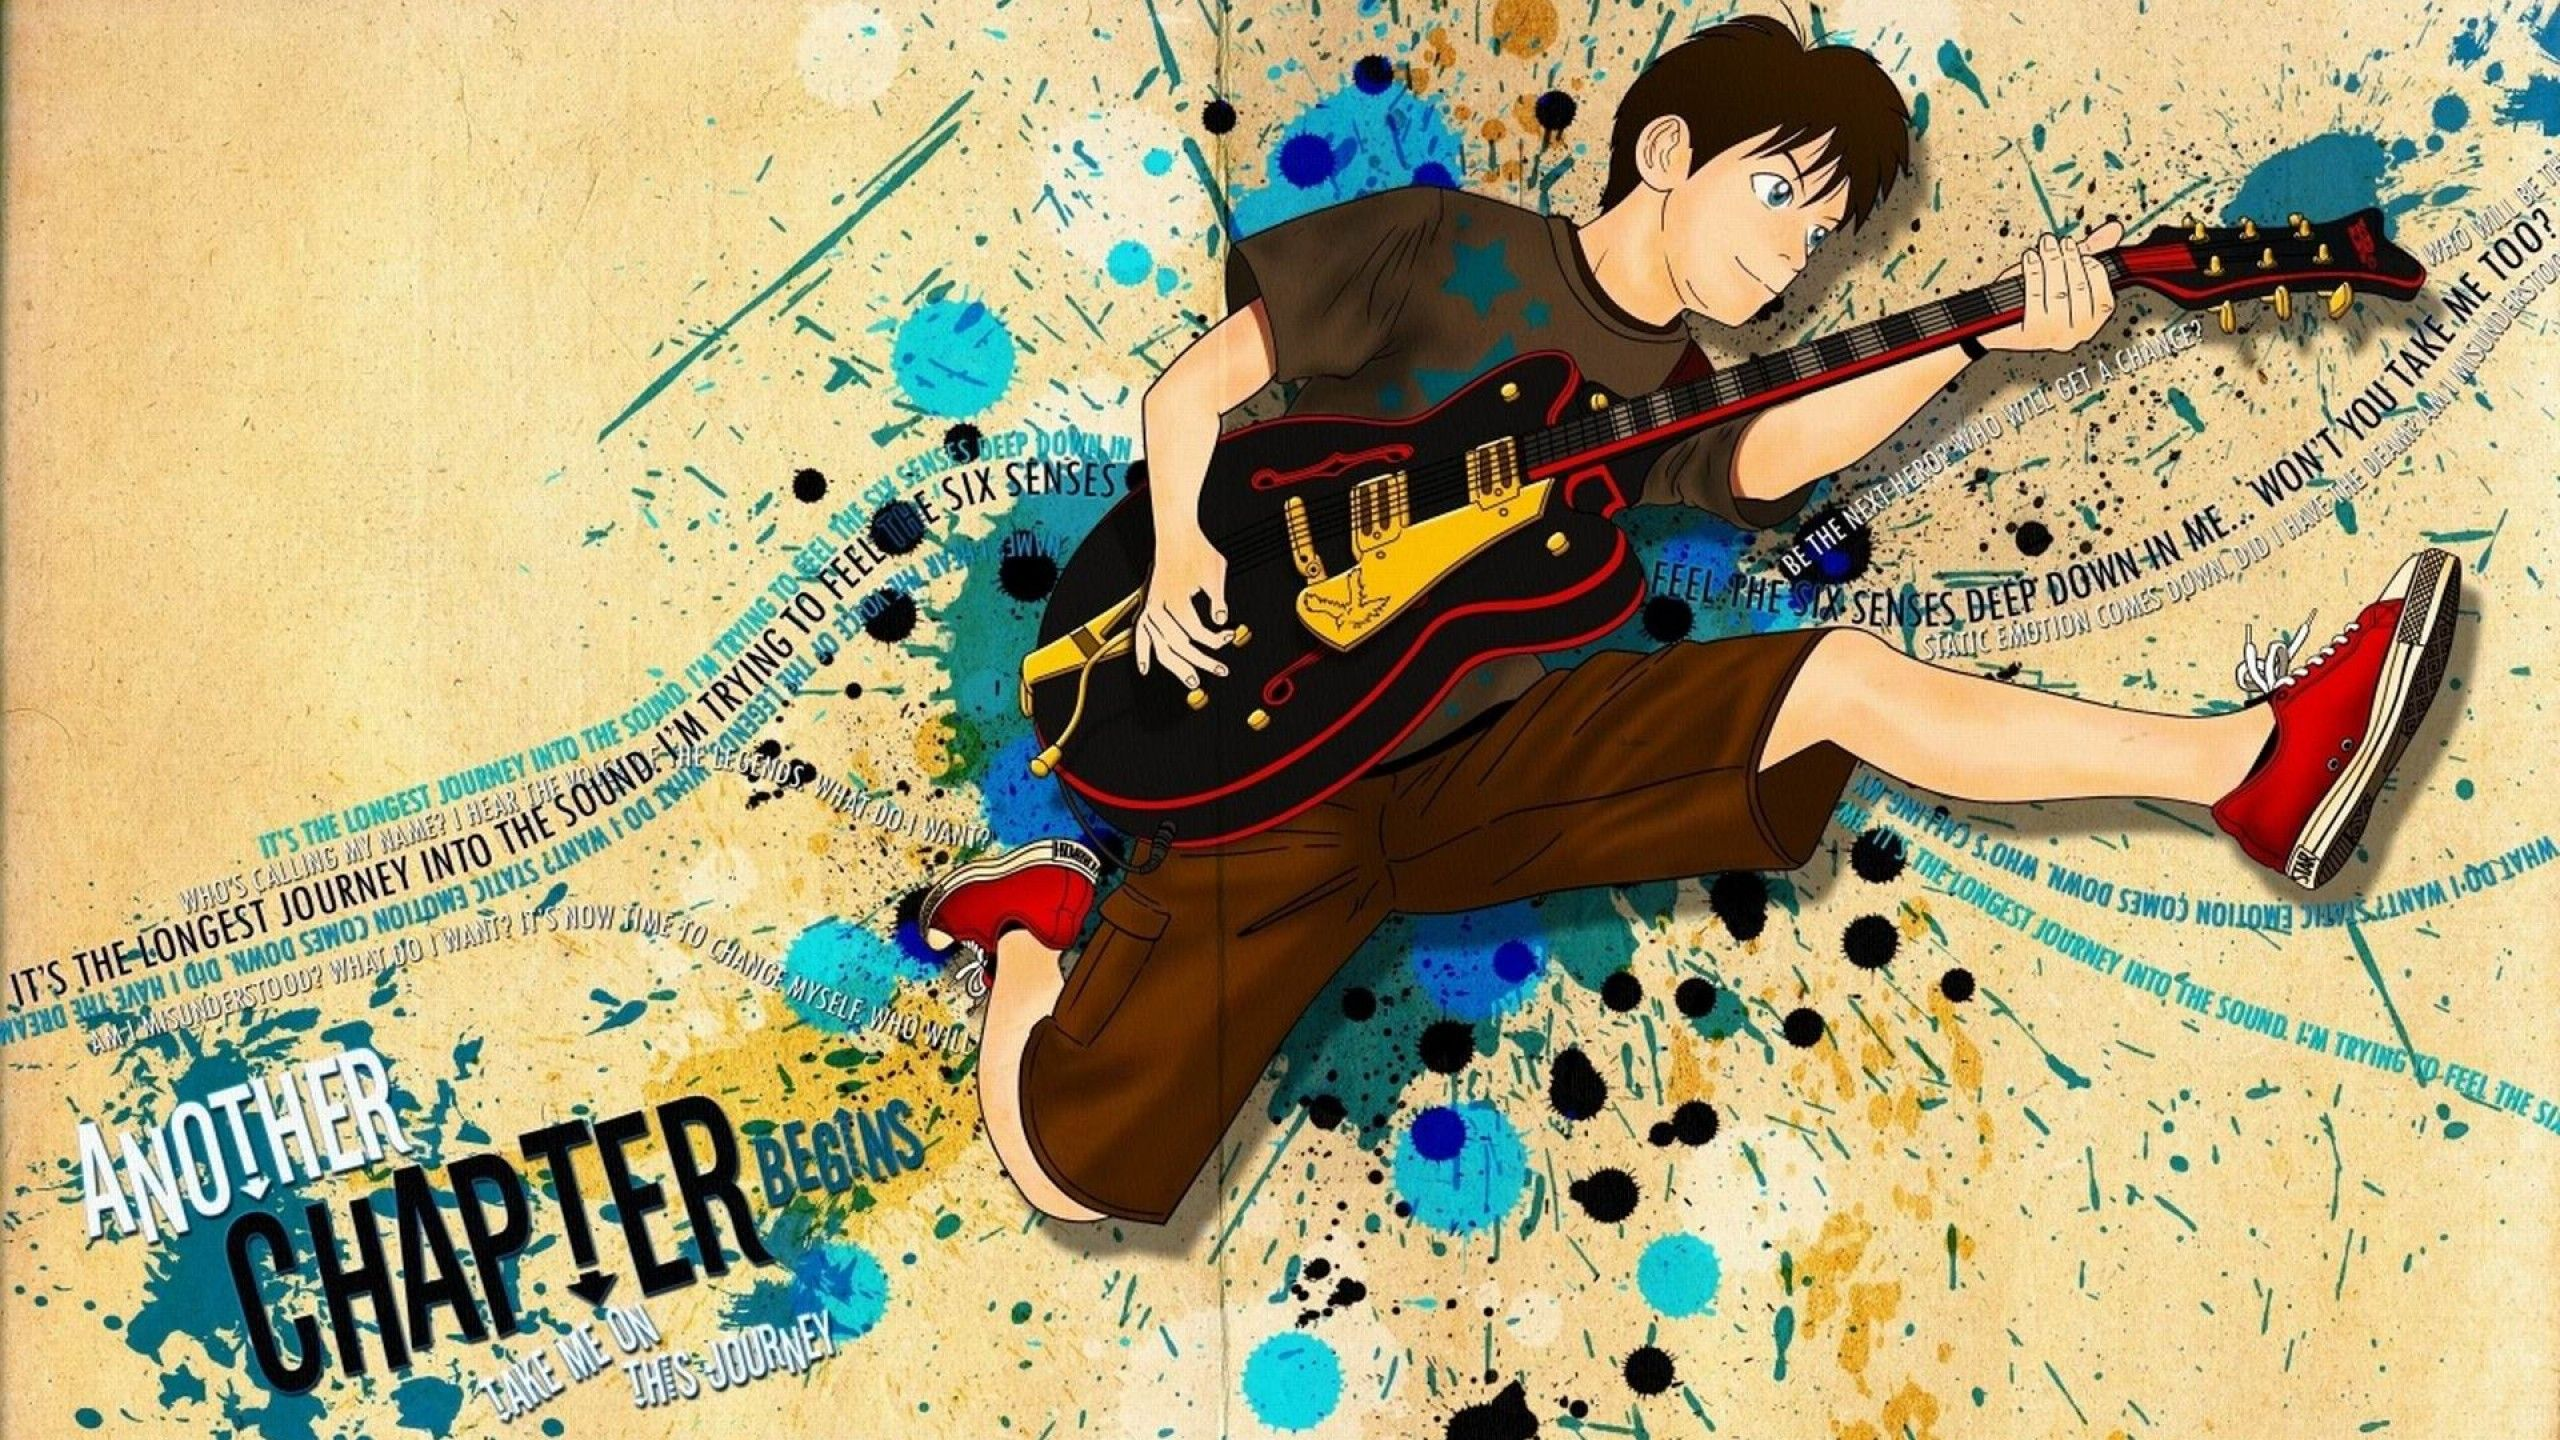 Anime With Guitar Wallpapers Top Free Anime With Guitar Backgrounds Wallpaperaccess